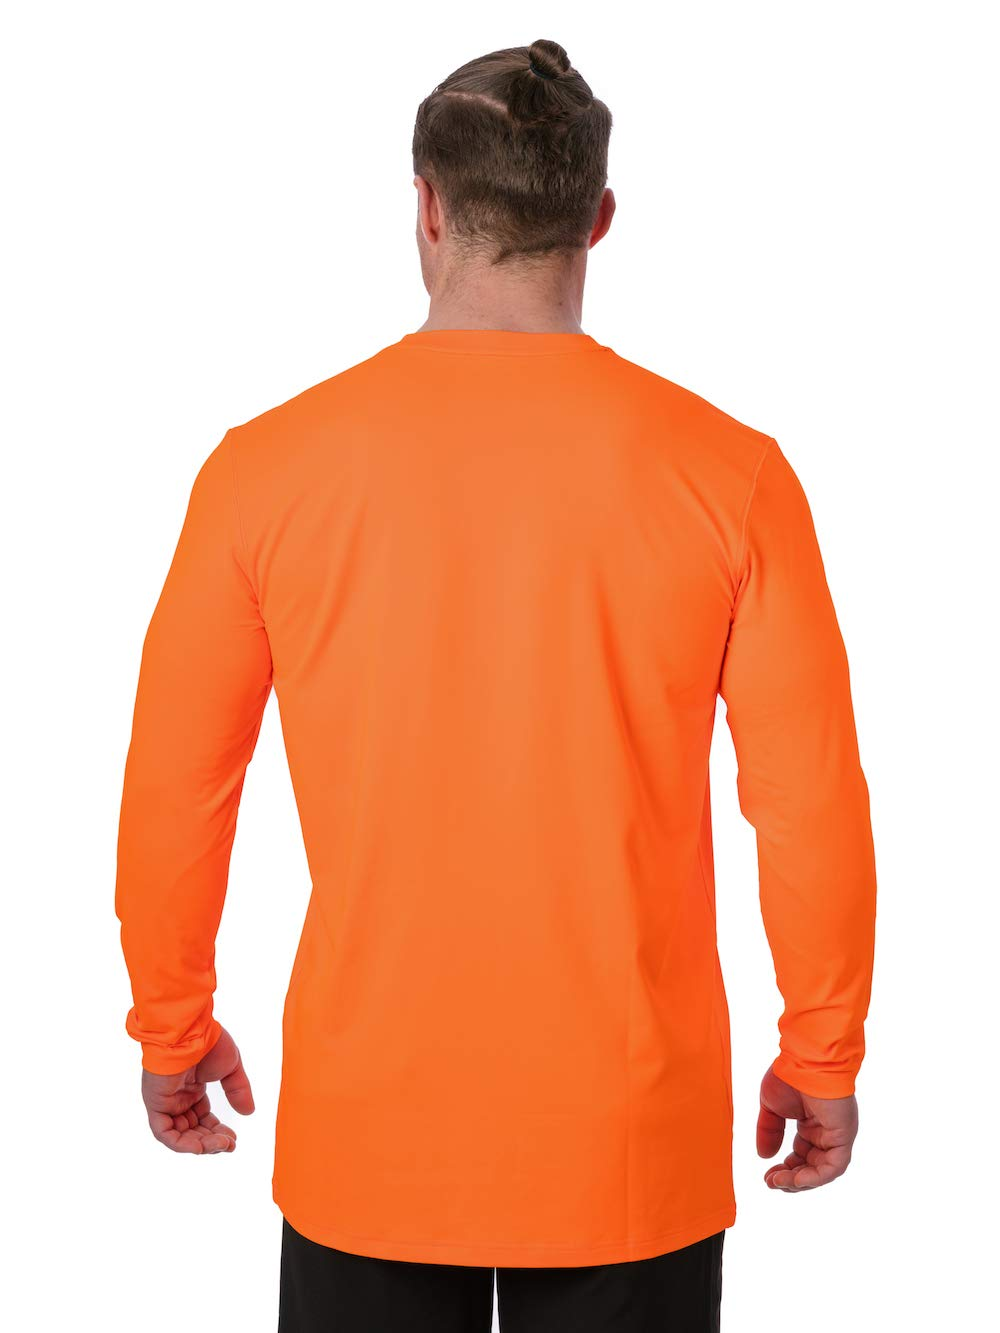 Sun Protection Moisture Wicking Comfortable Work Quick Drying Top Arctic Cool Men/'s Instant Cooling Long Sleeve Pocket Workwear Shirt Performance Tech Breathable UPF 50